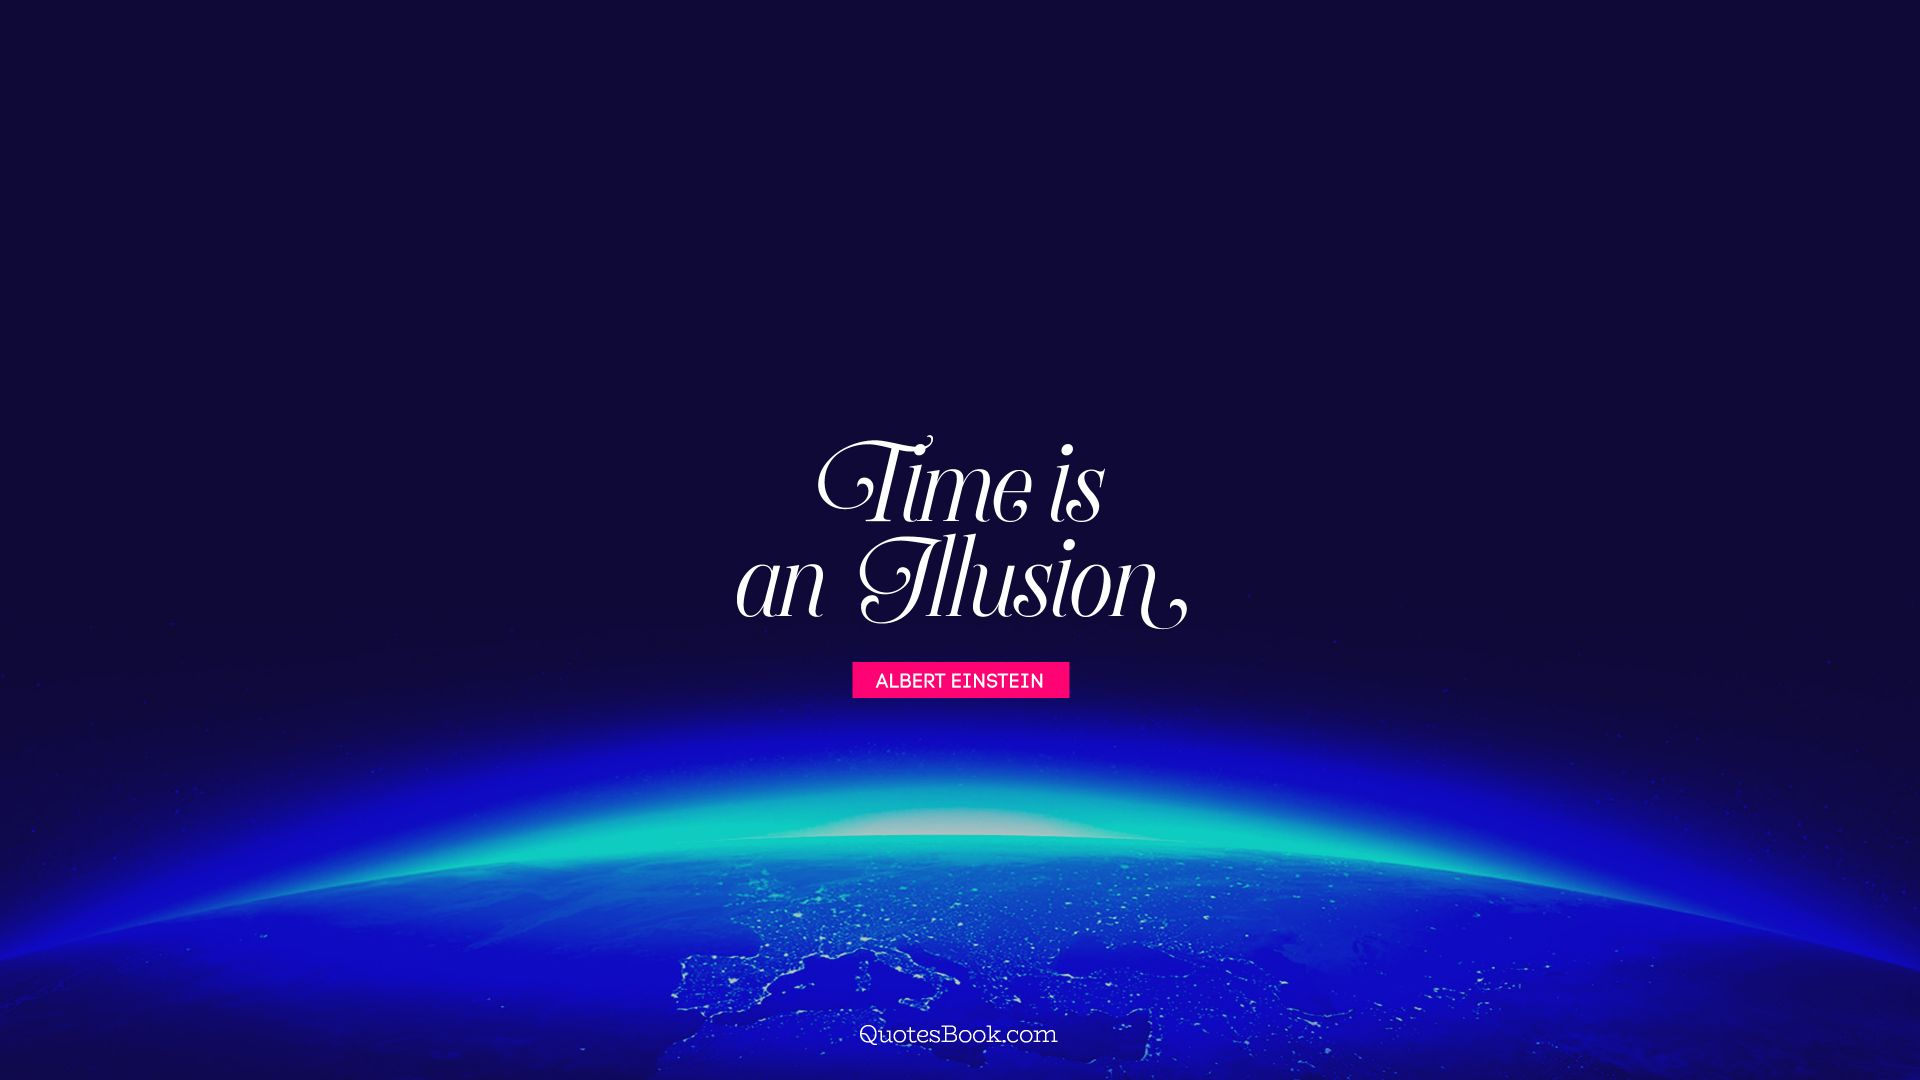 Time is an illusion. - Quote by Albert Einstein